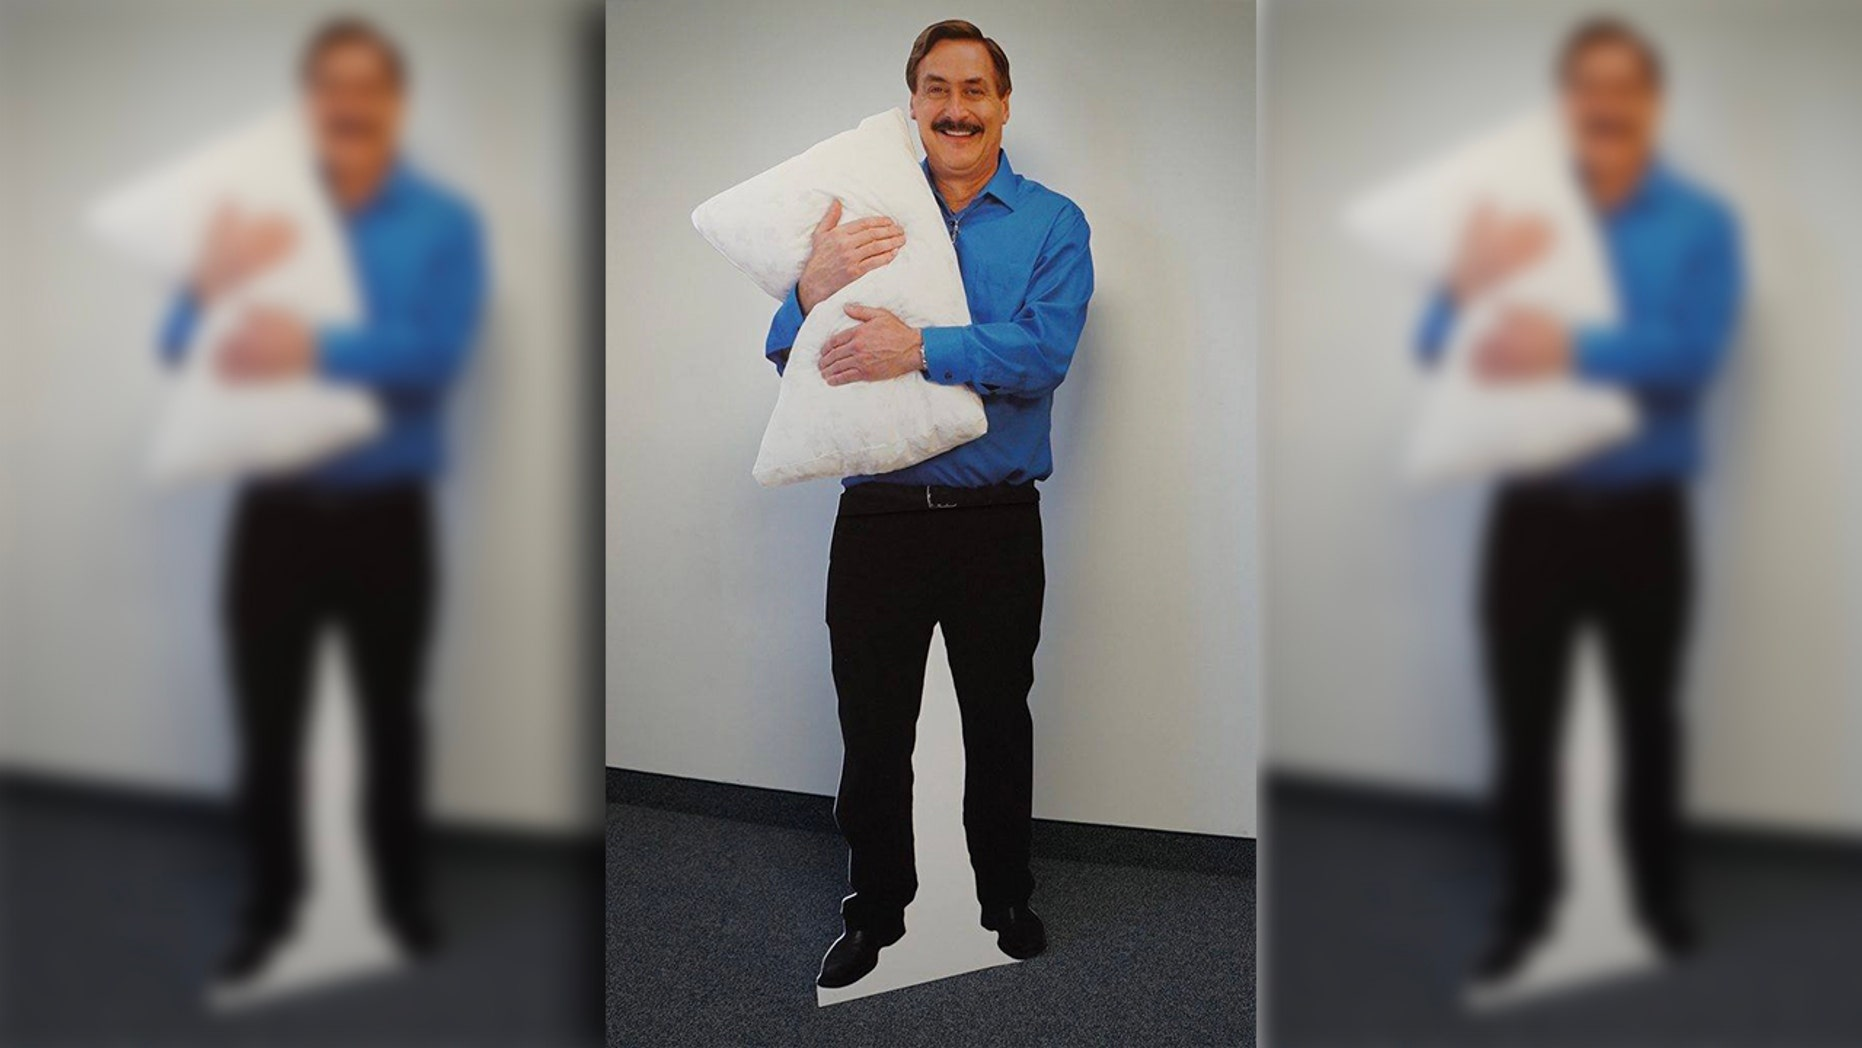 The Jordan Police Department shared a call officers received to check on the welfare of a man who turned out to the cutout of MyPillow CEO Mike Lindell.